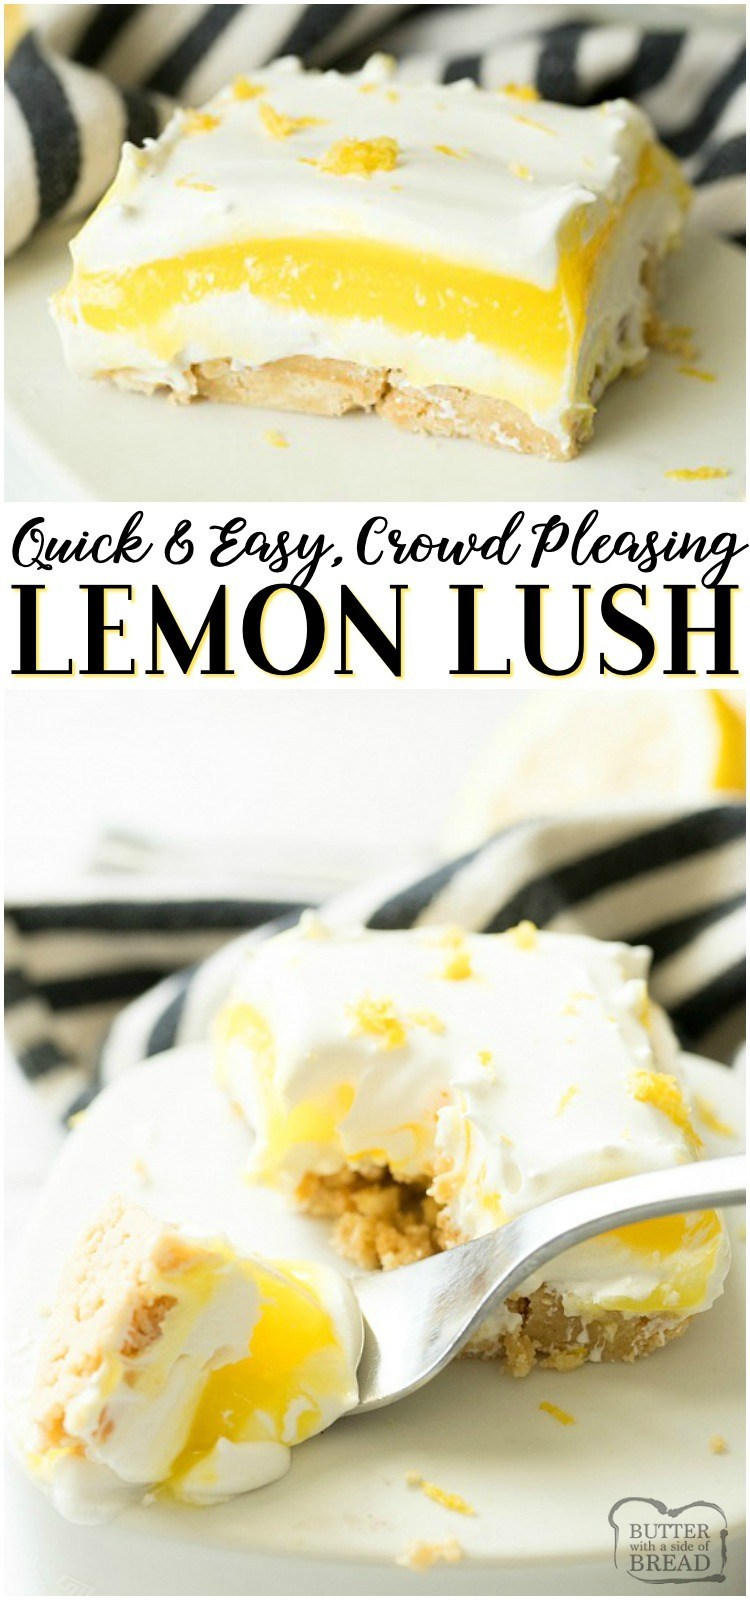 Lemon Lush is an easy no bake lemon dessert that comes together fast and serves a crowd. Throw this lemon lush dessert together quickly for a potluck or bbq... all of your guests will love it! #lemon #pudding #dessert #nobake #summer #recipe from BUTTER WITH A SIDE OF BREAD